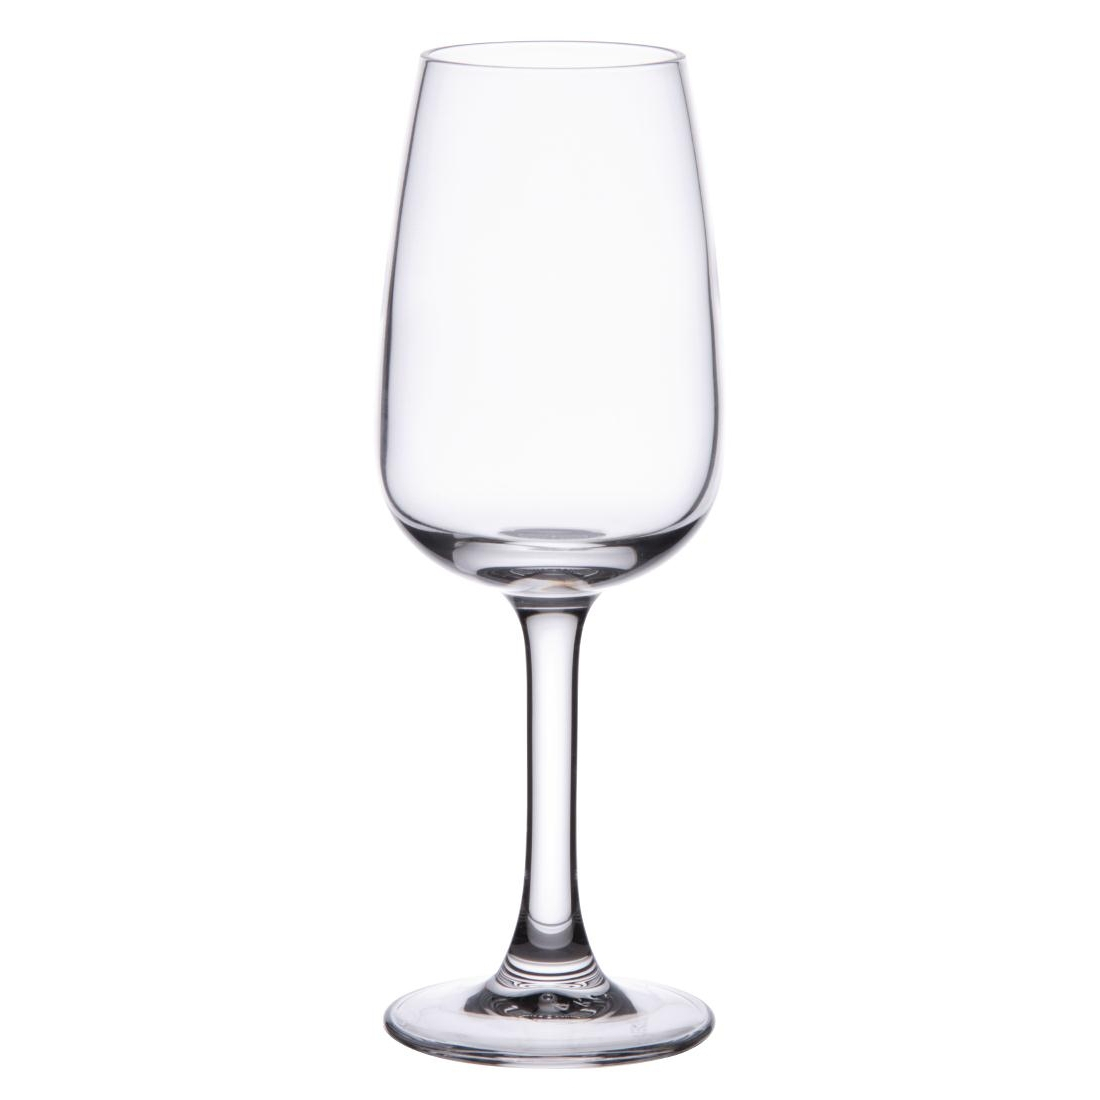 Chef & Sommelier Cabernet Port or Sherry Glasses 120ml